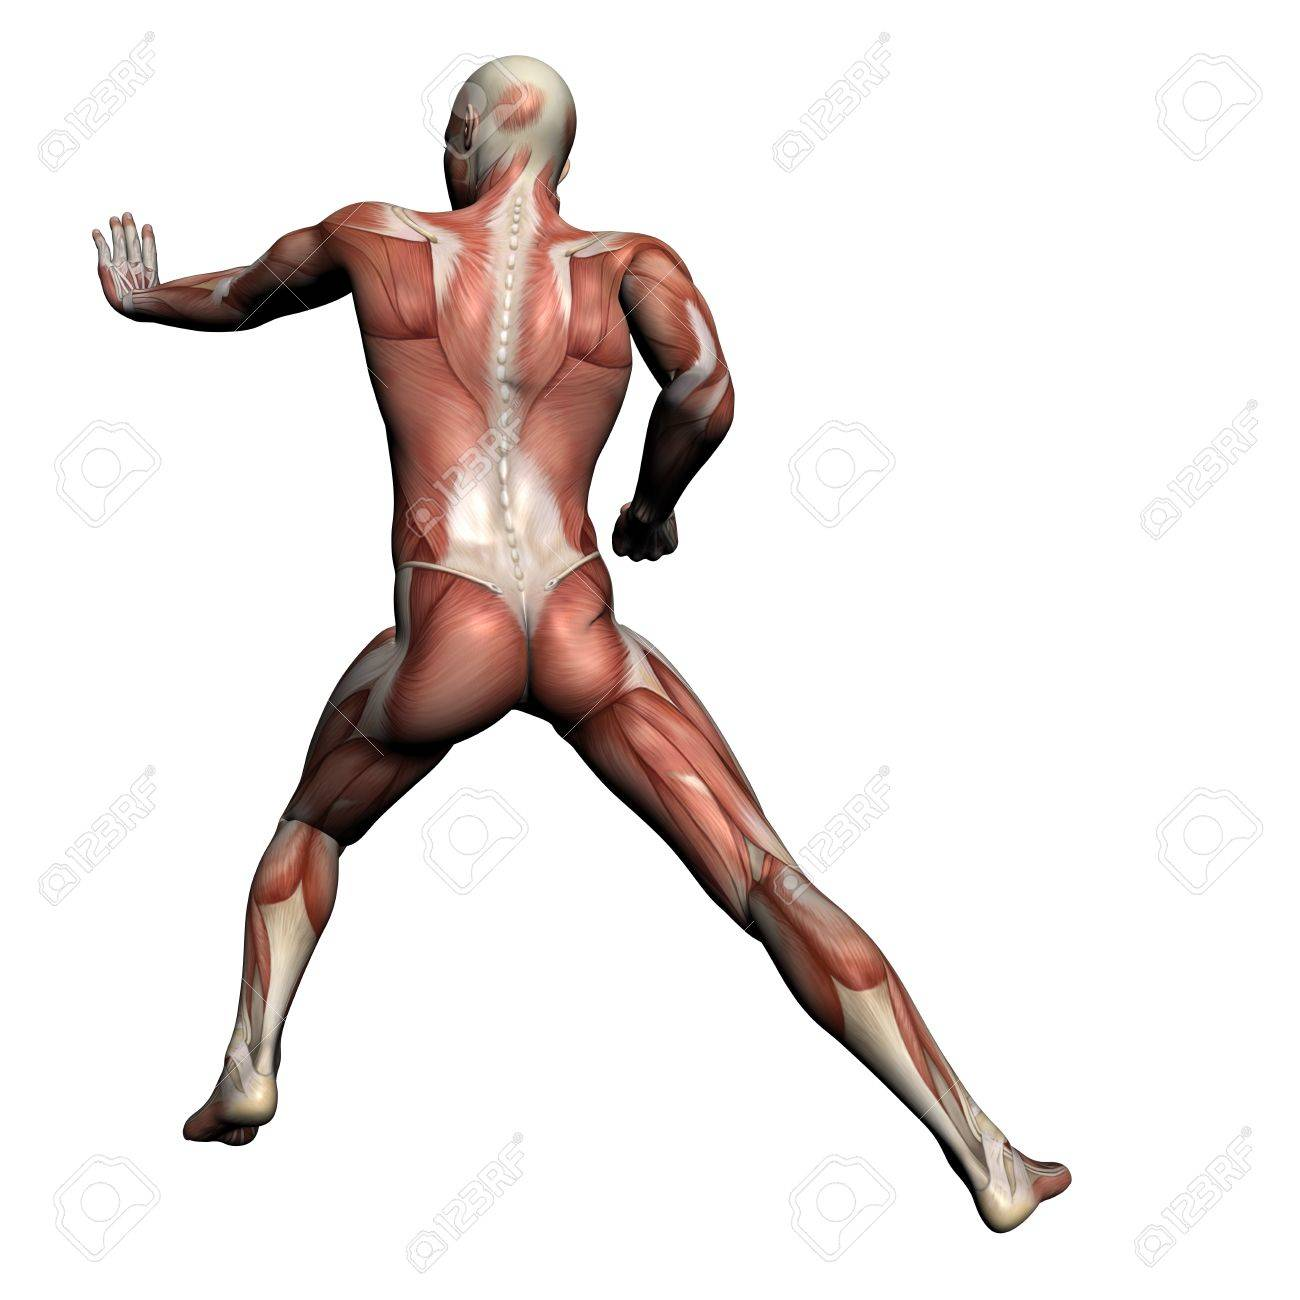 Human Anatomy - Male Muscles Made In 3d Software Stock Photo ...